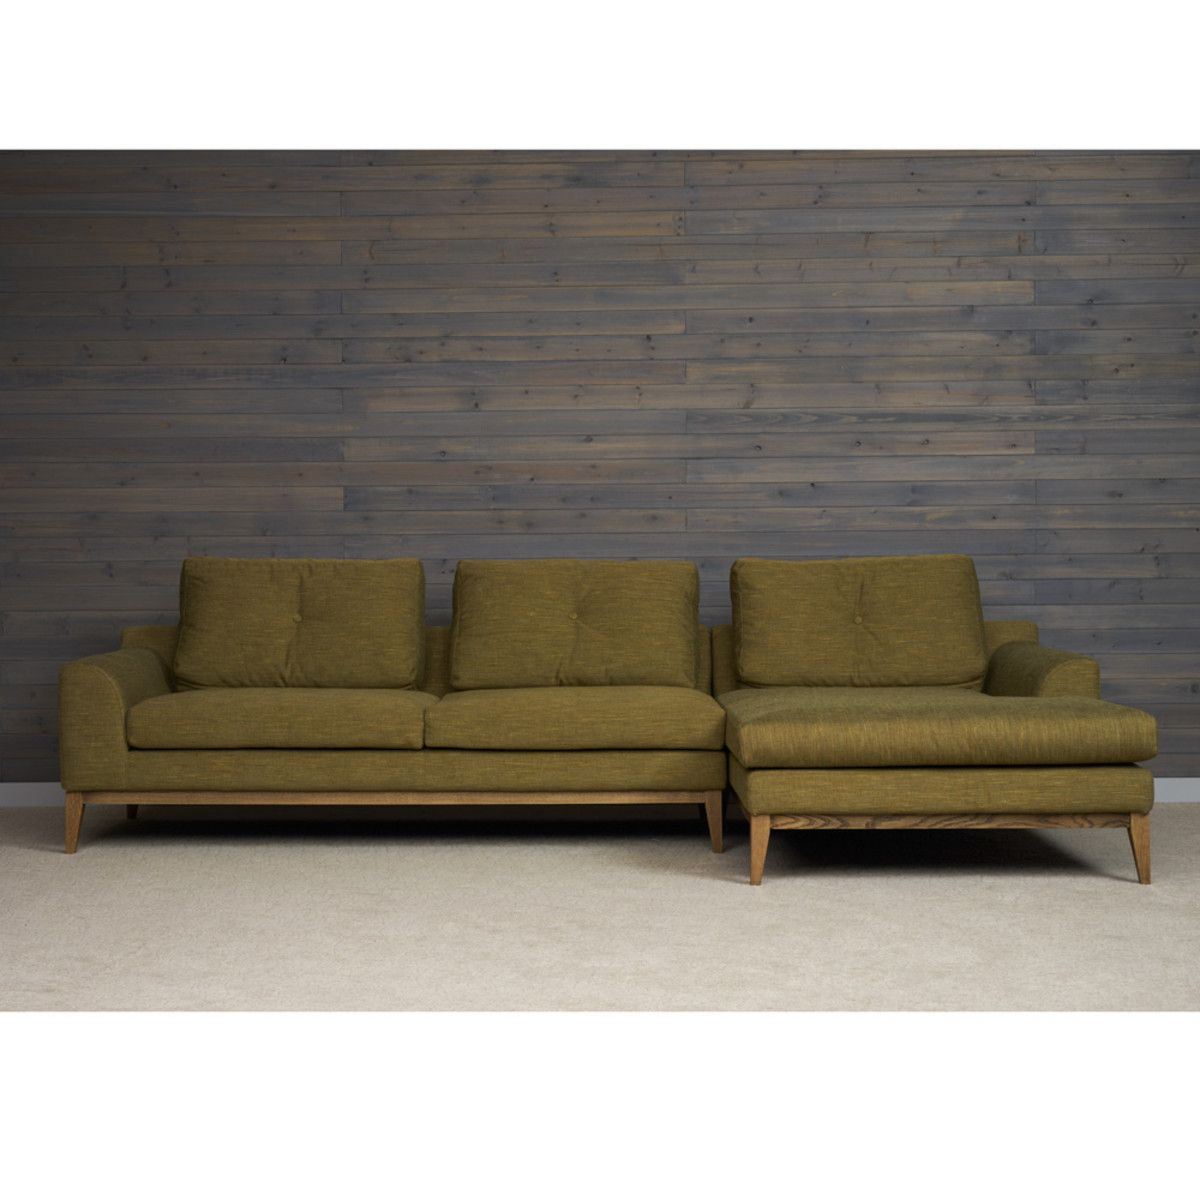 Wagner 2pc Mid Century Modern Sofa Sectional Olive Green Rst Brands Mid Century Modern Sectional Sofa Mid Century Modern Sofa Modern Sofa Sectional